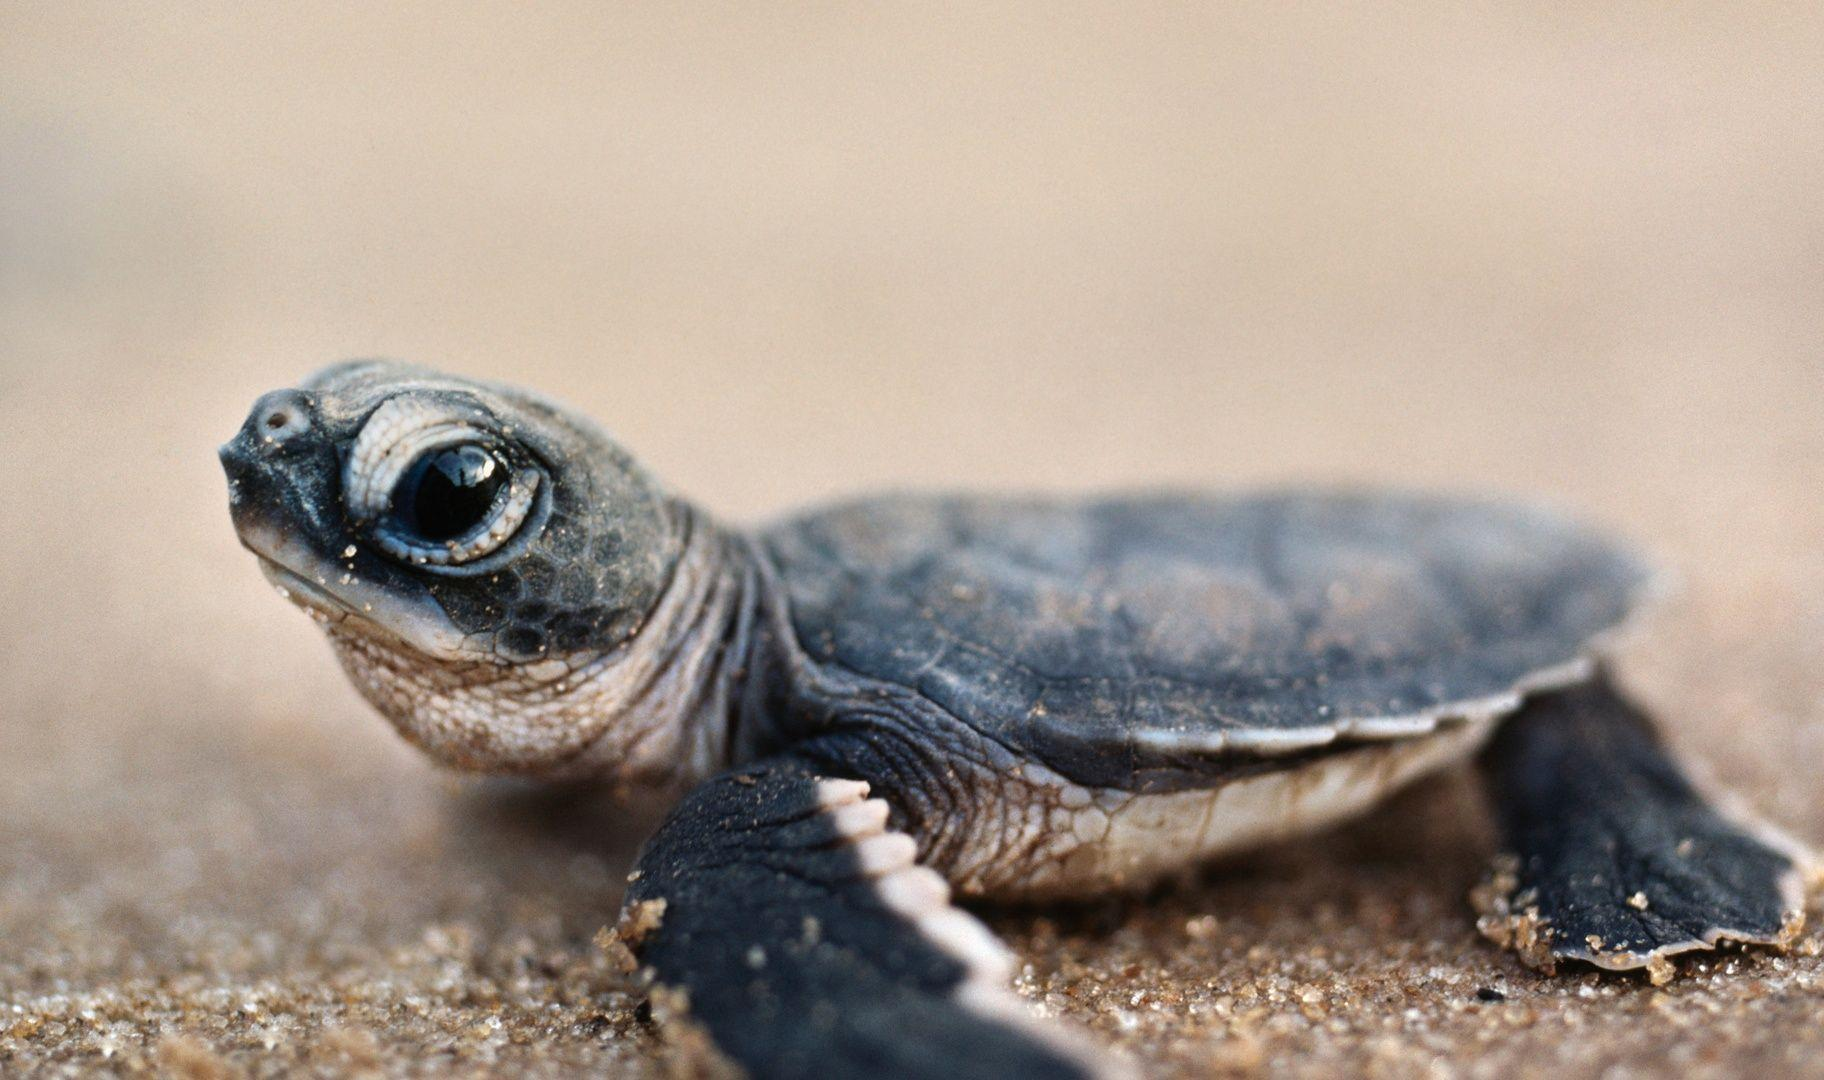 Sunshine Palate: The Baby Sea Turtles are Hatching  |Baby Sea Turtles